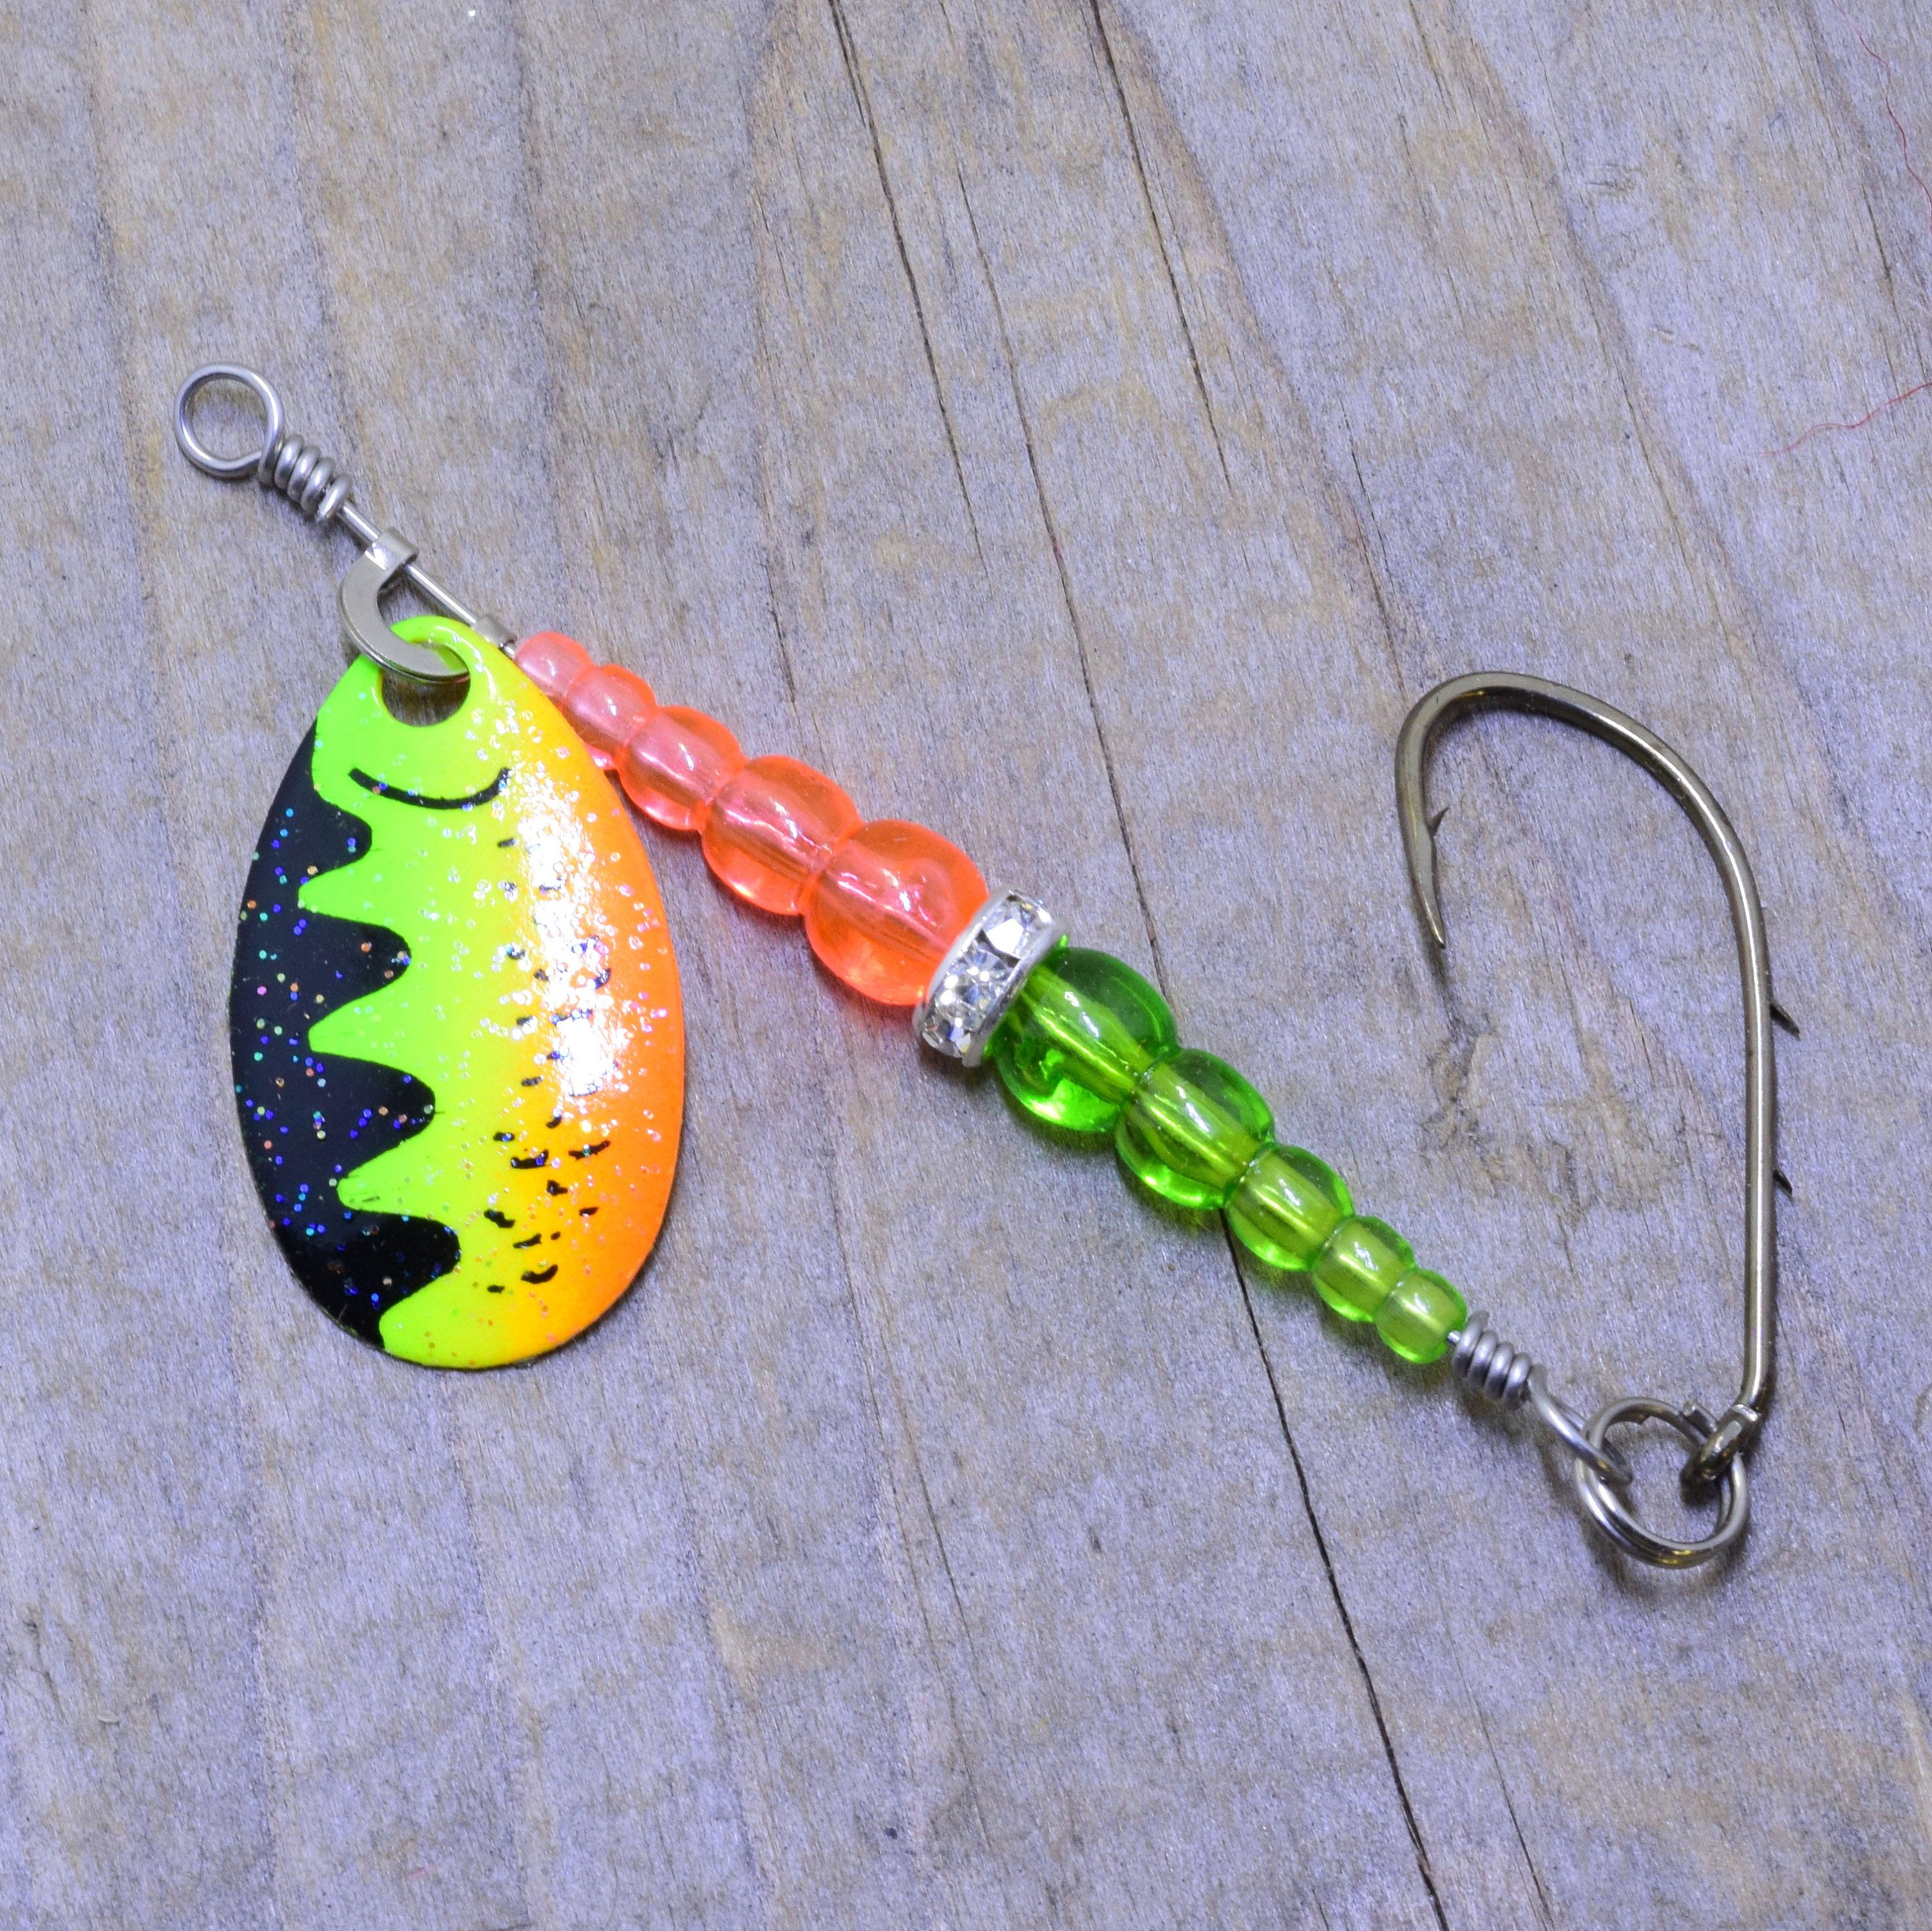 10 JIG SPINNERS SIZE 0 ORANGE//YELLOW FISHING LURE SPINNER COLORADO BLADE